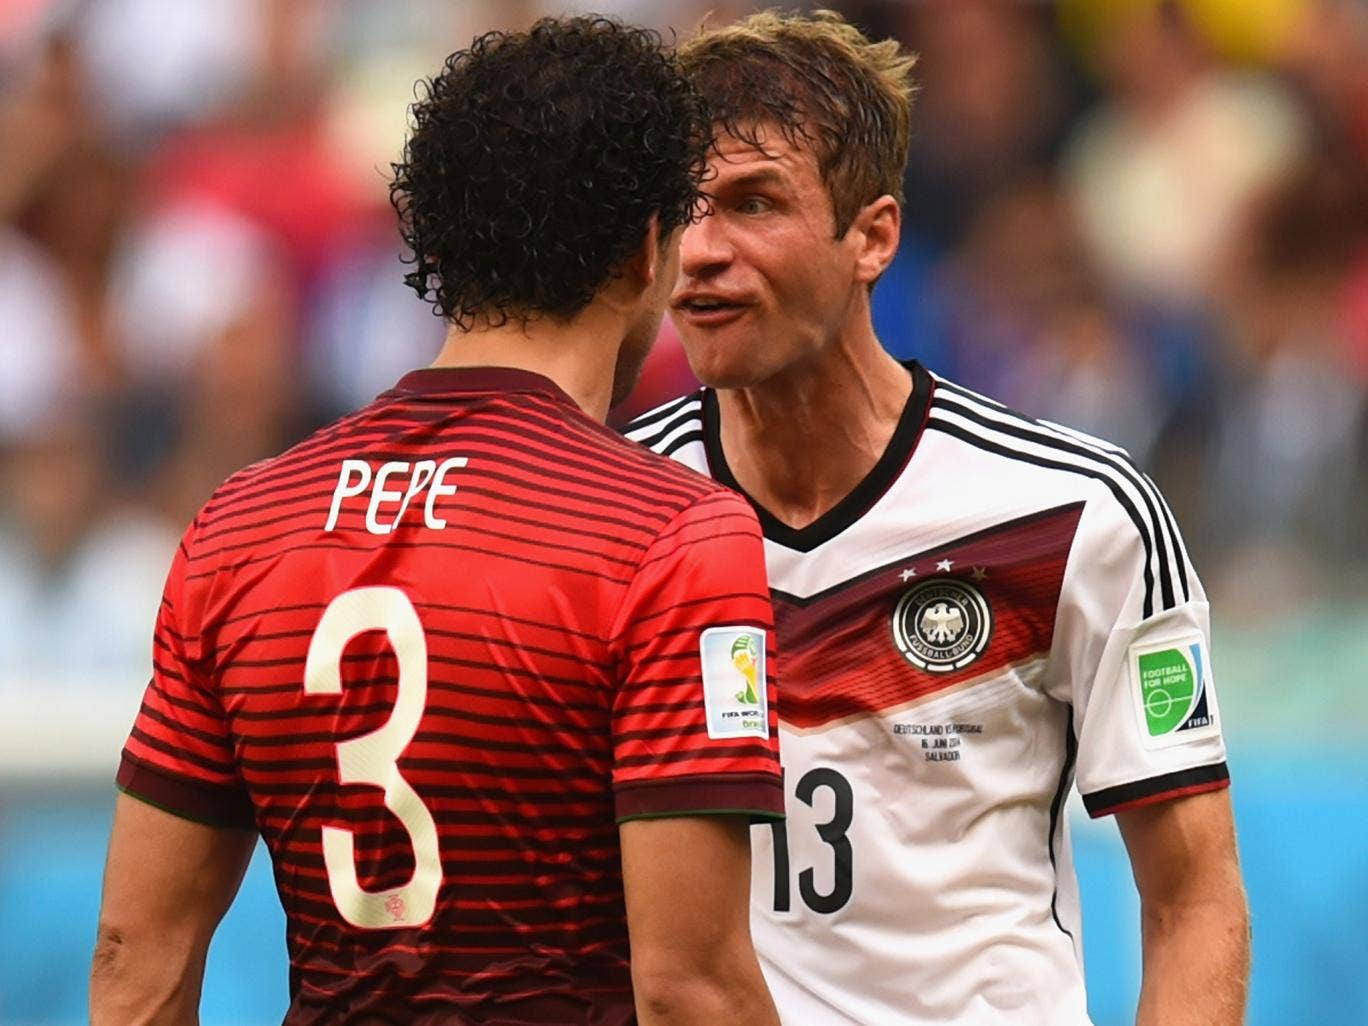 Thomas Mueller comes together with Pepe